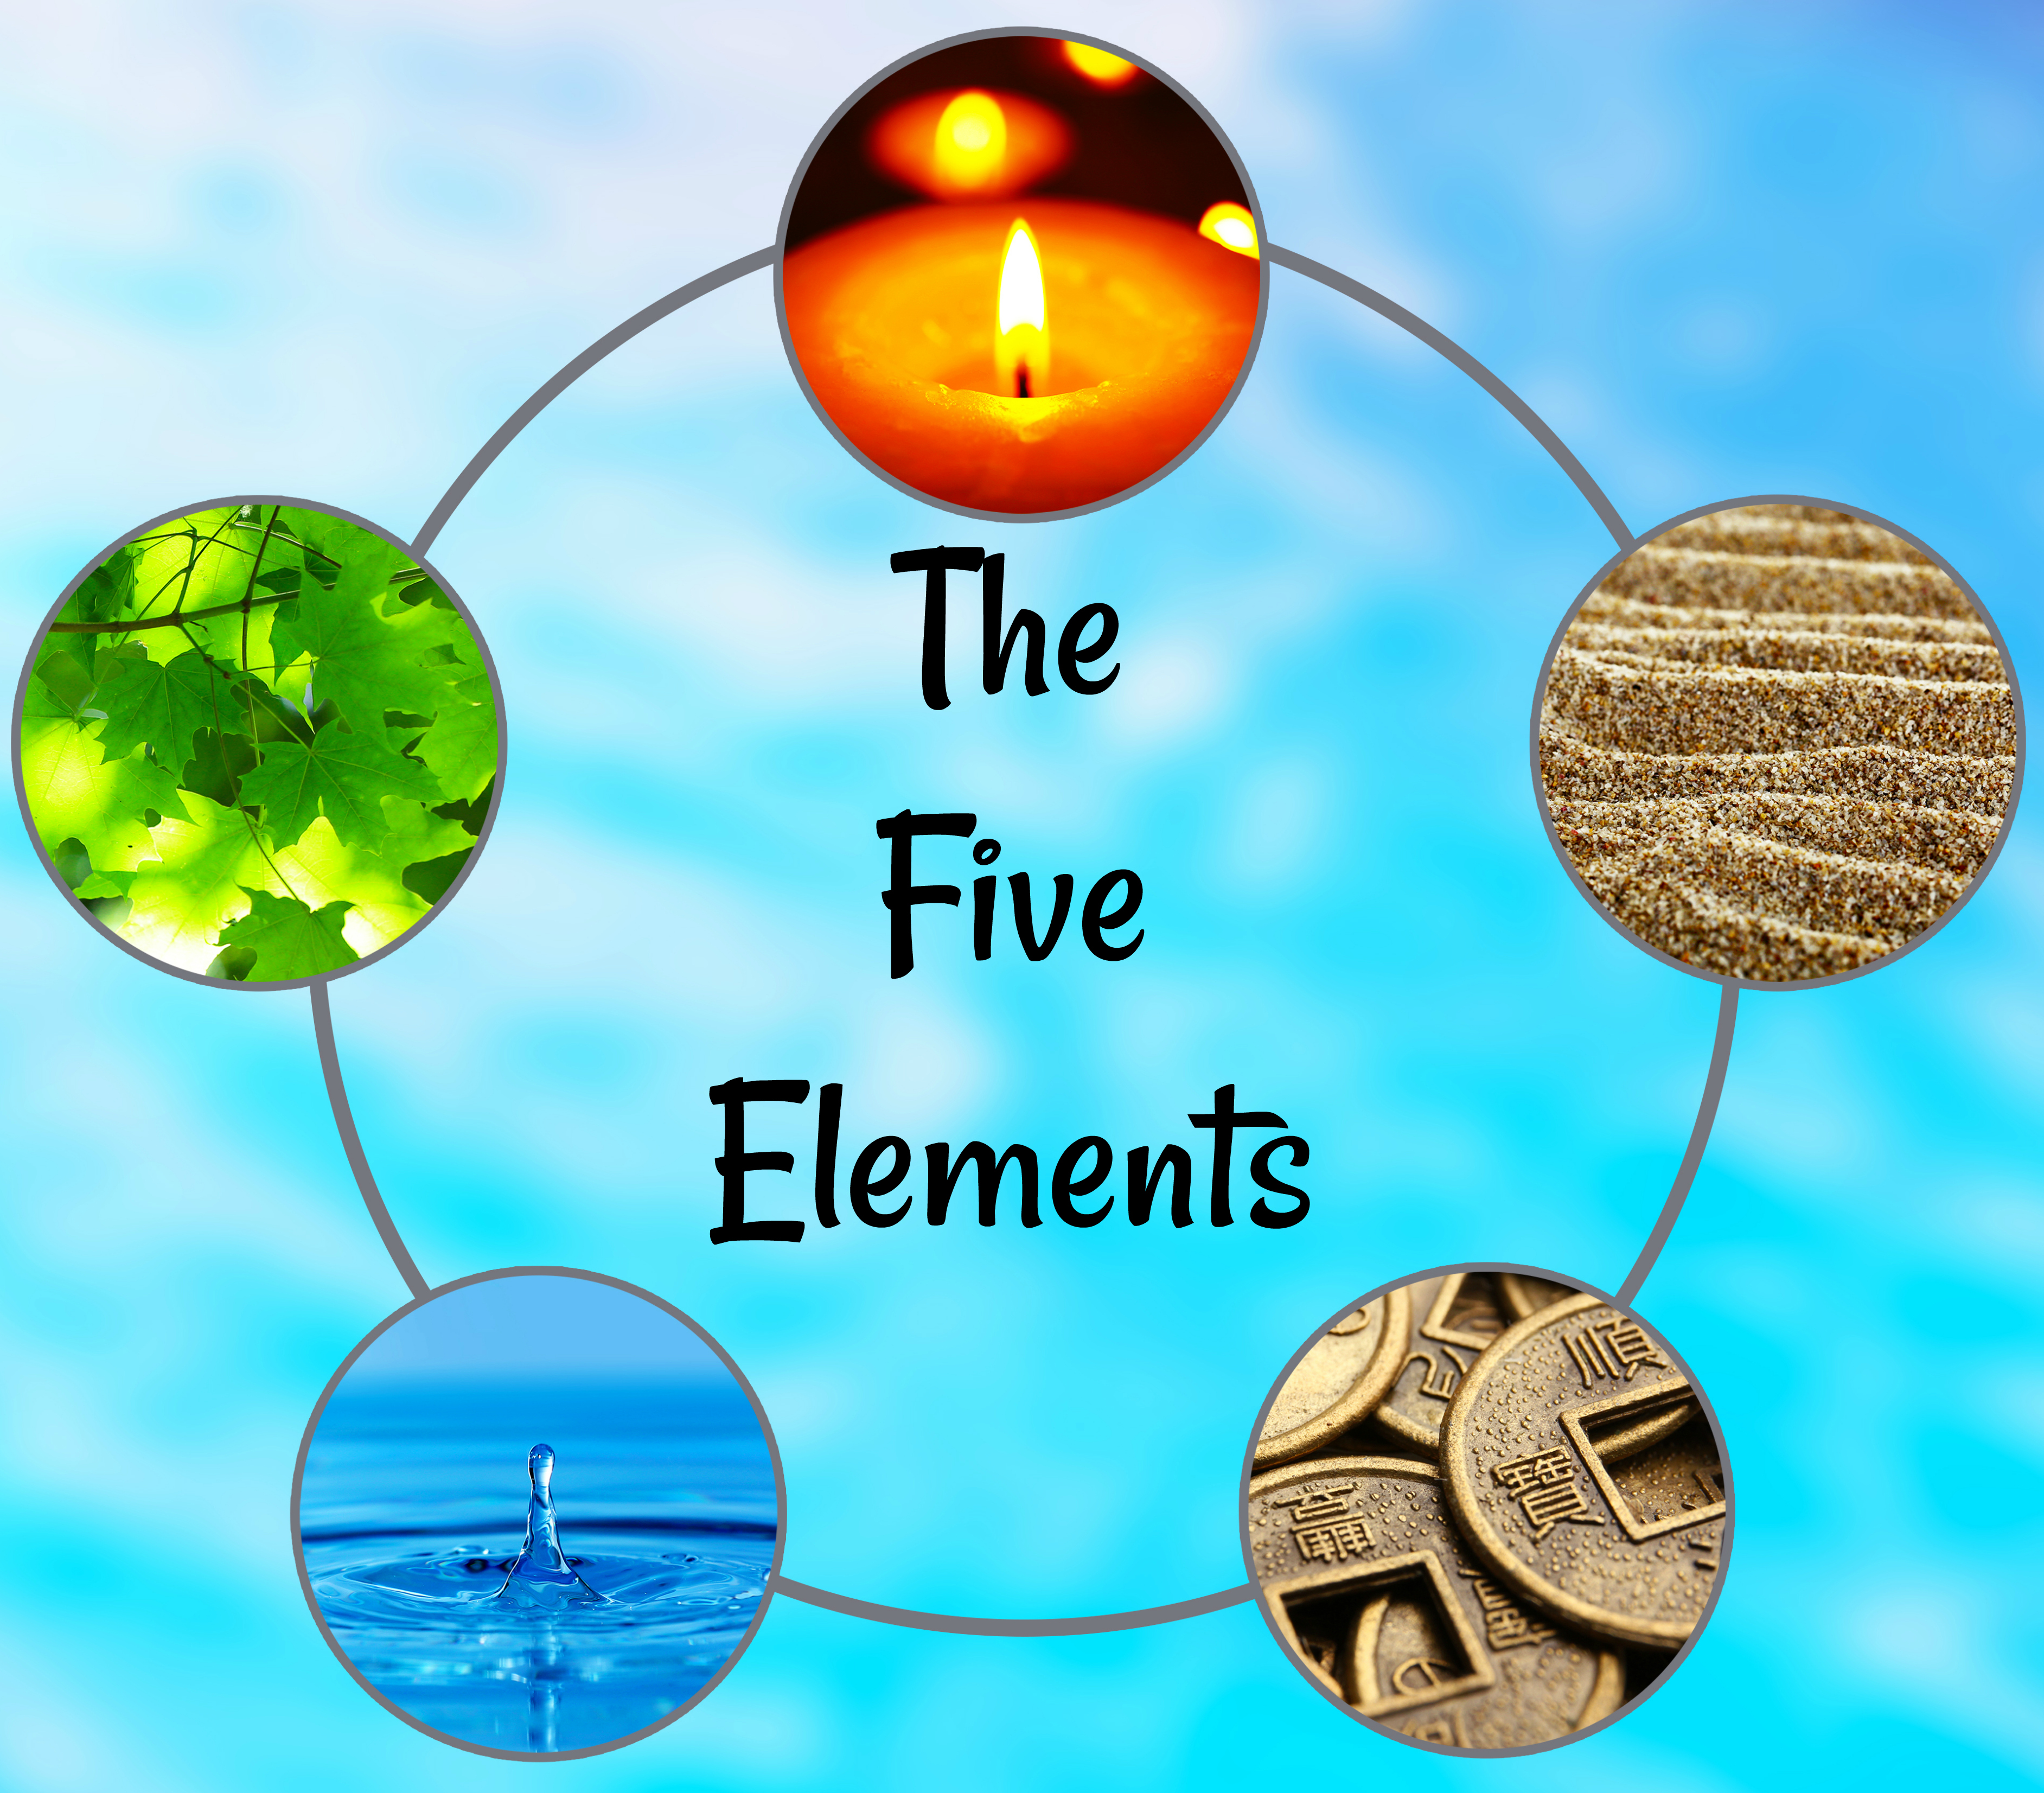 The Five Elements is an ancient personality type system that allows you to look at the world through a new lens of compassion and unity.